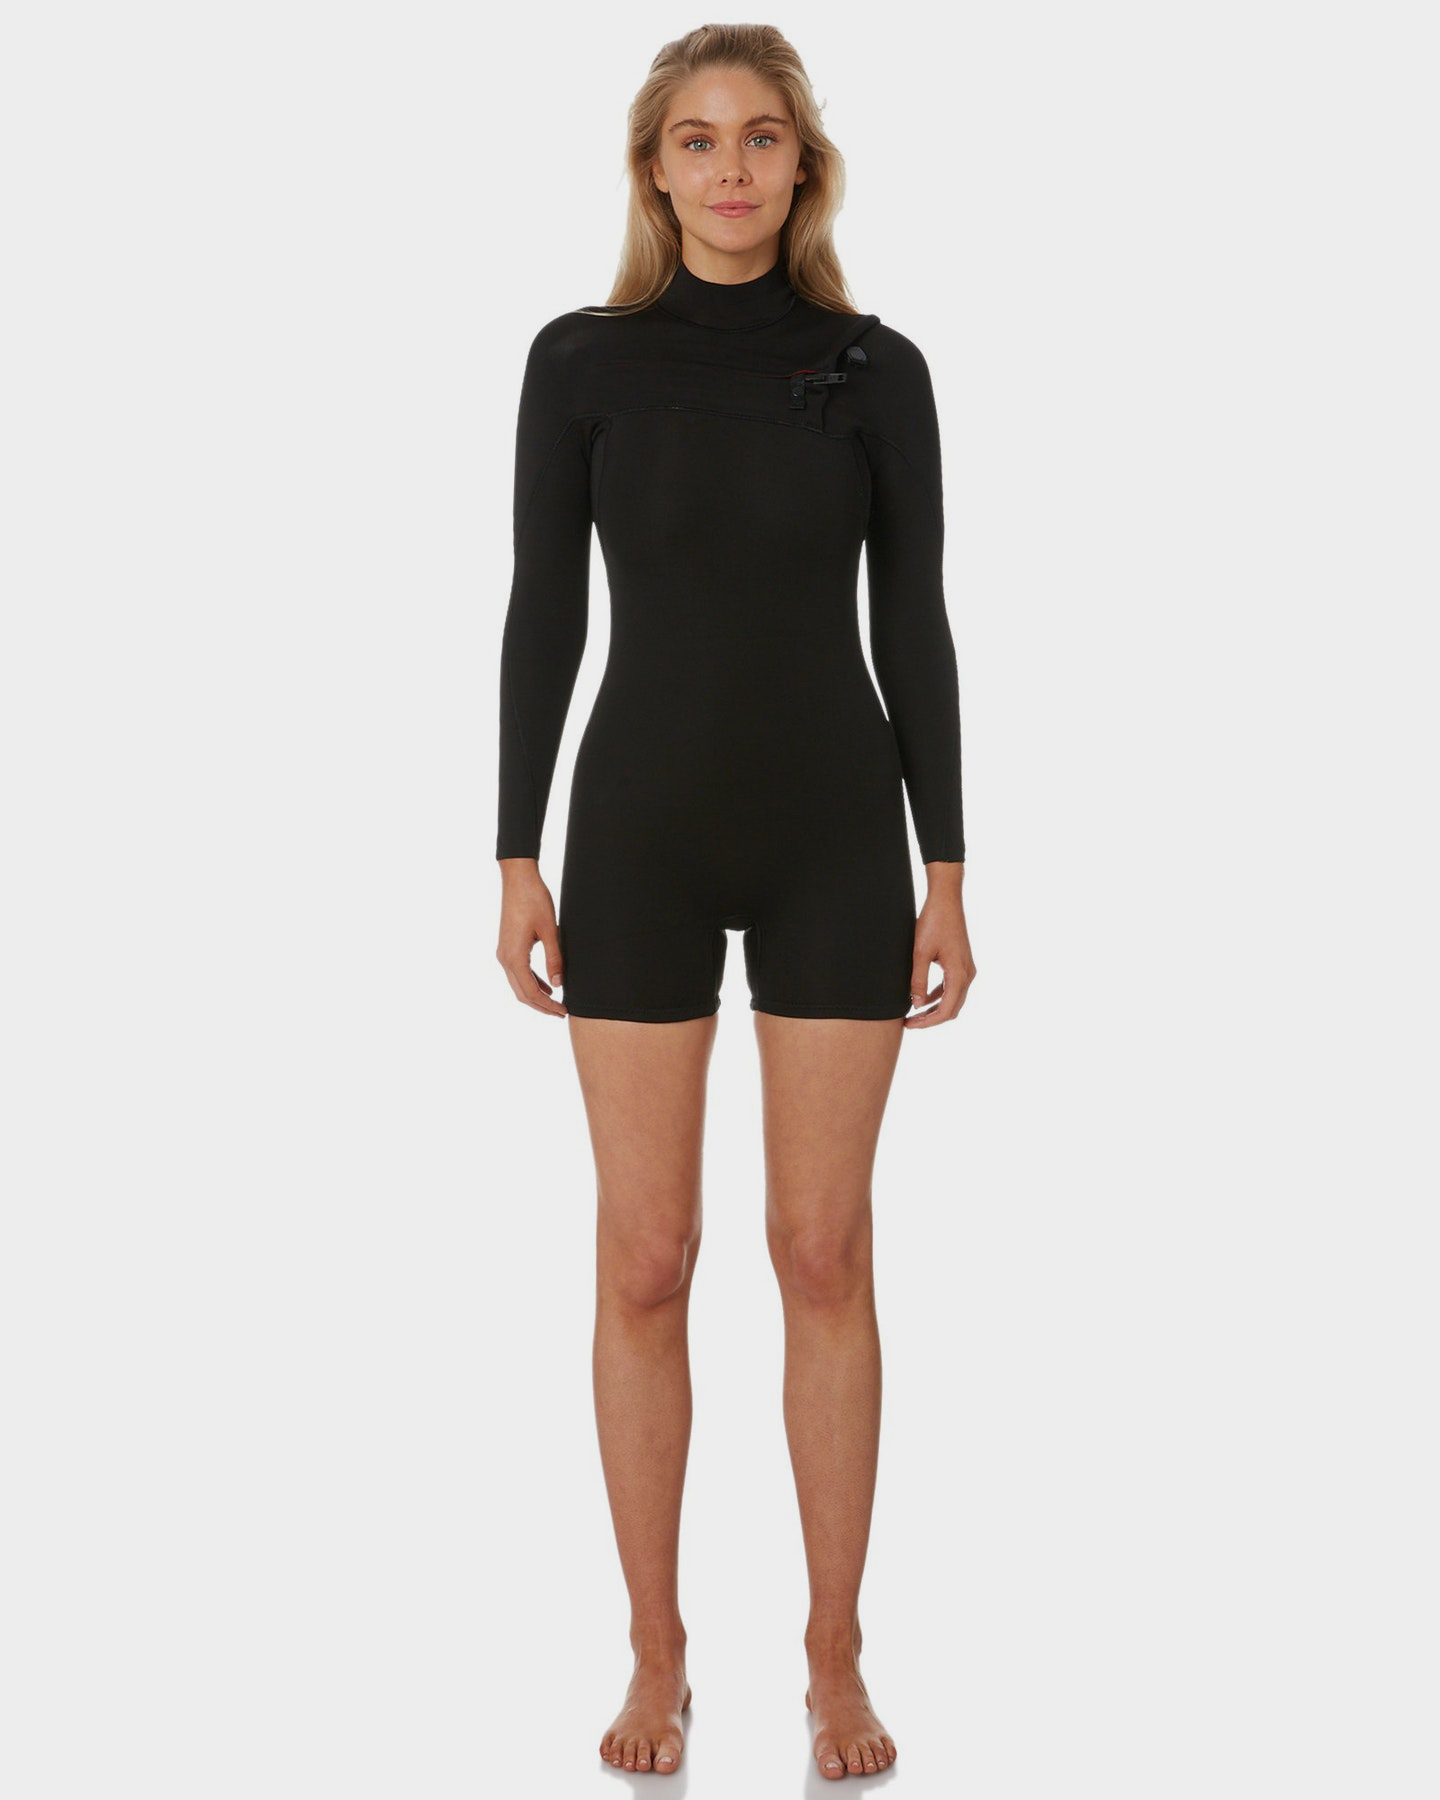 Project Blank Womens L/S High Performance Spring Suit Black